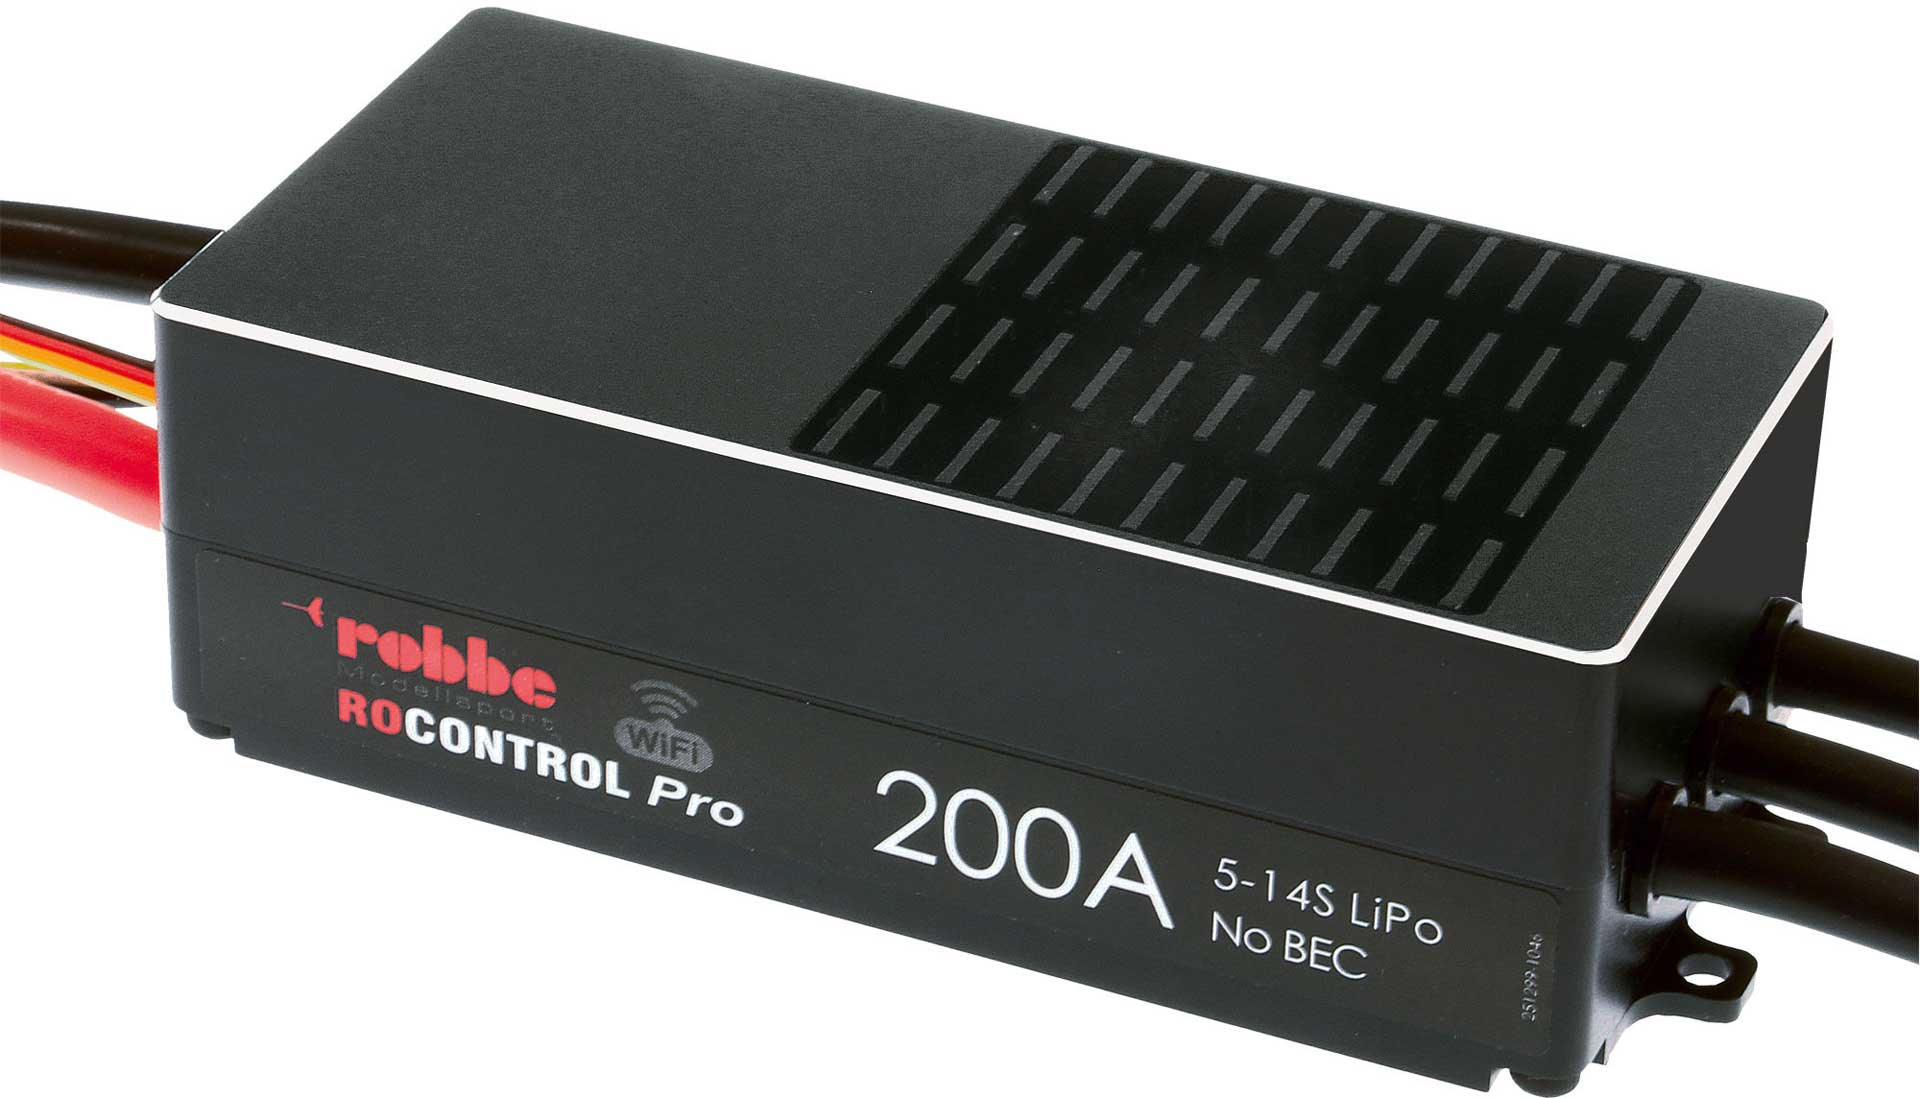 ROBBE RO-CONTROL PRO WIFI 5-14S 200A OPTO without plugs and jacks